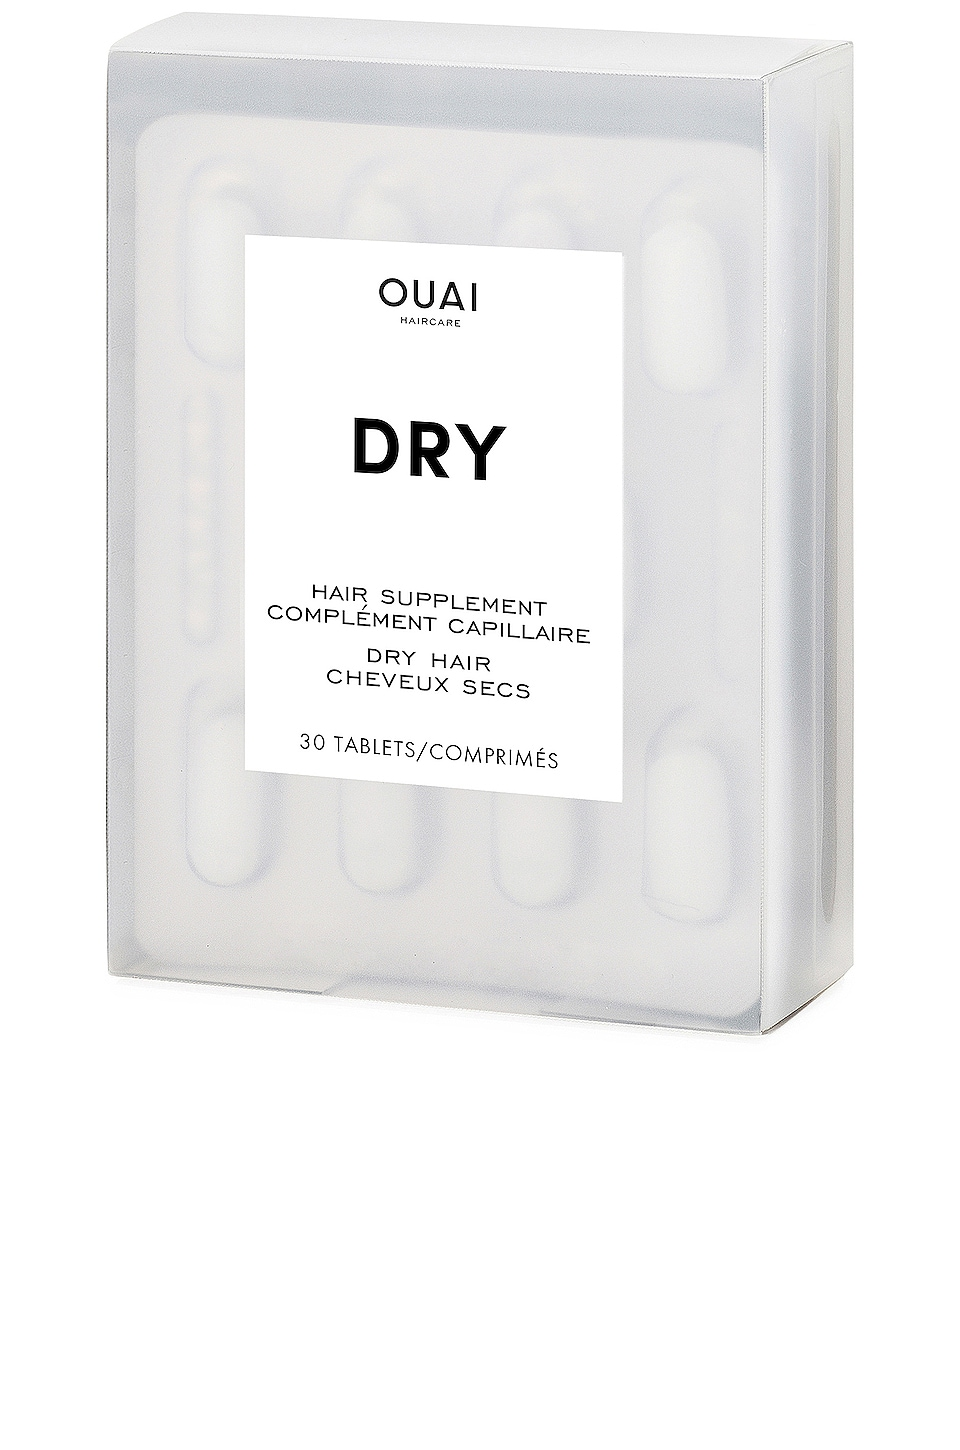 OUAI Dry Hair Supplement